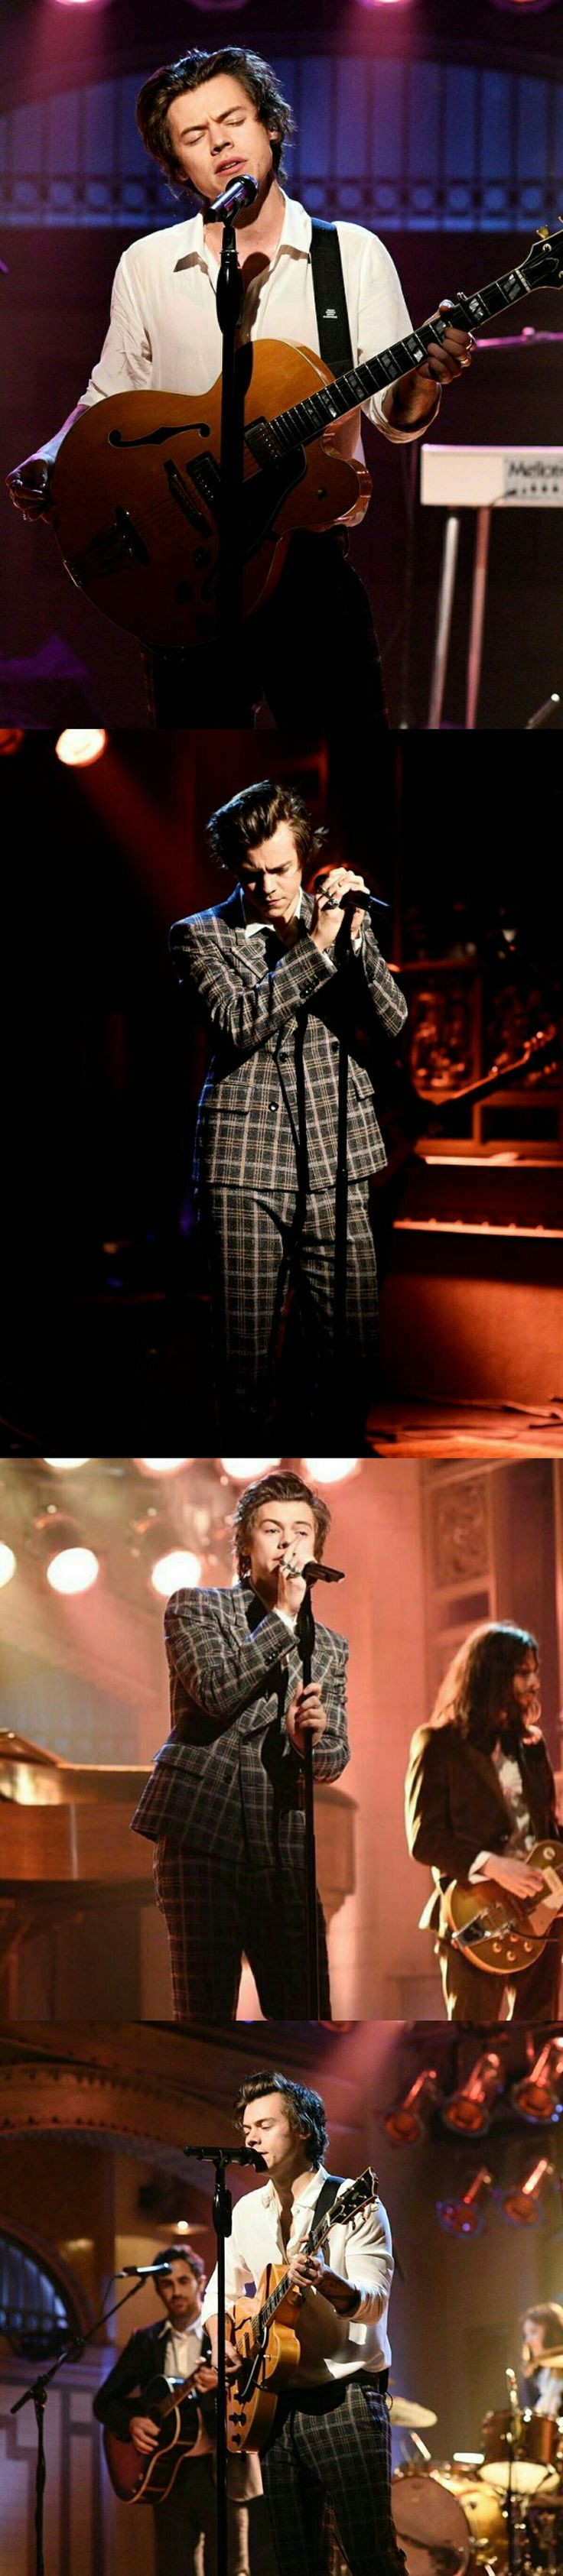 Harry Styles slays Sign of the Times and Ever Since New York on SNL. Follow ricksturn/harry-styles